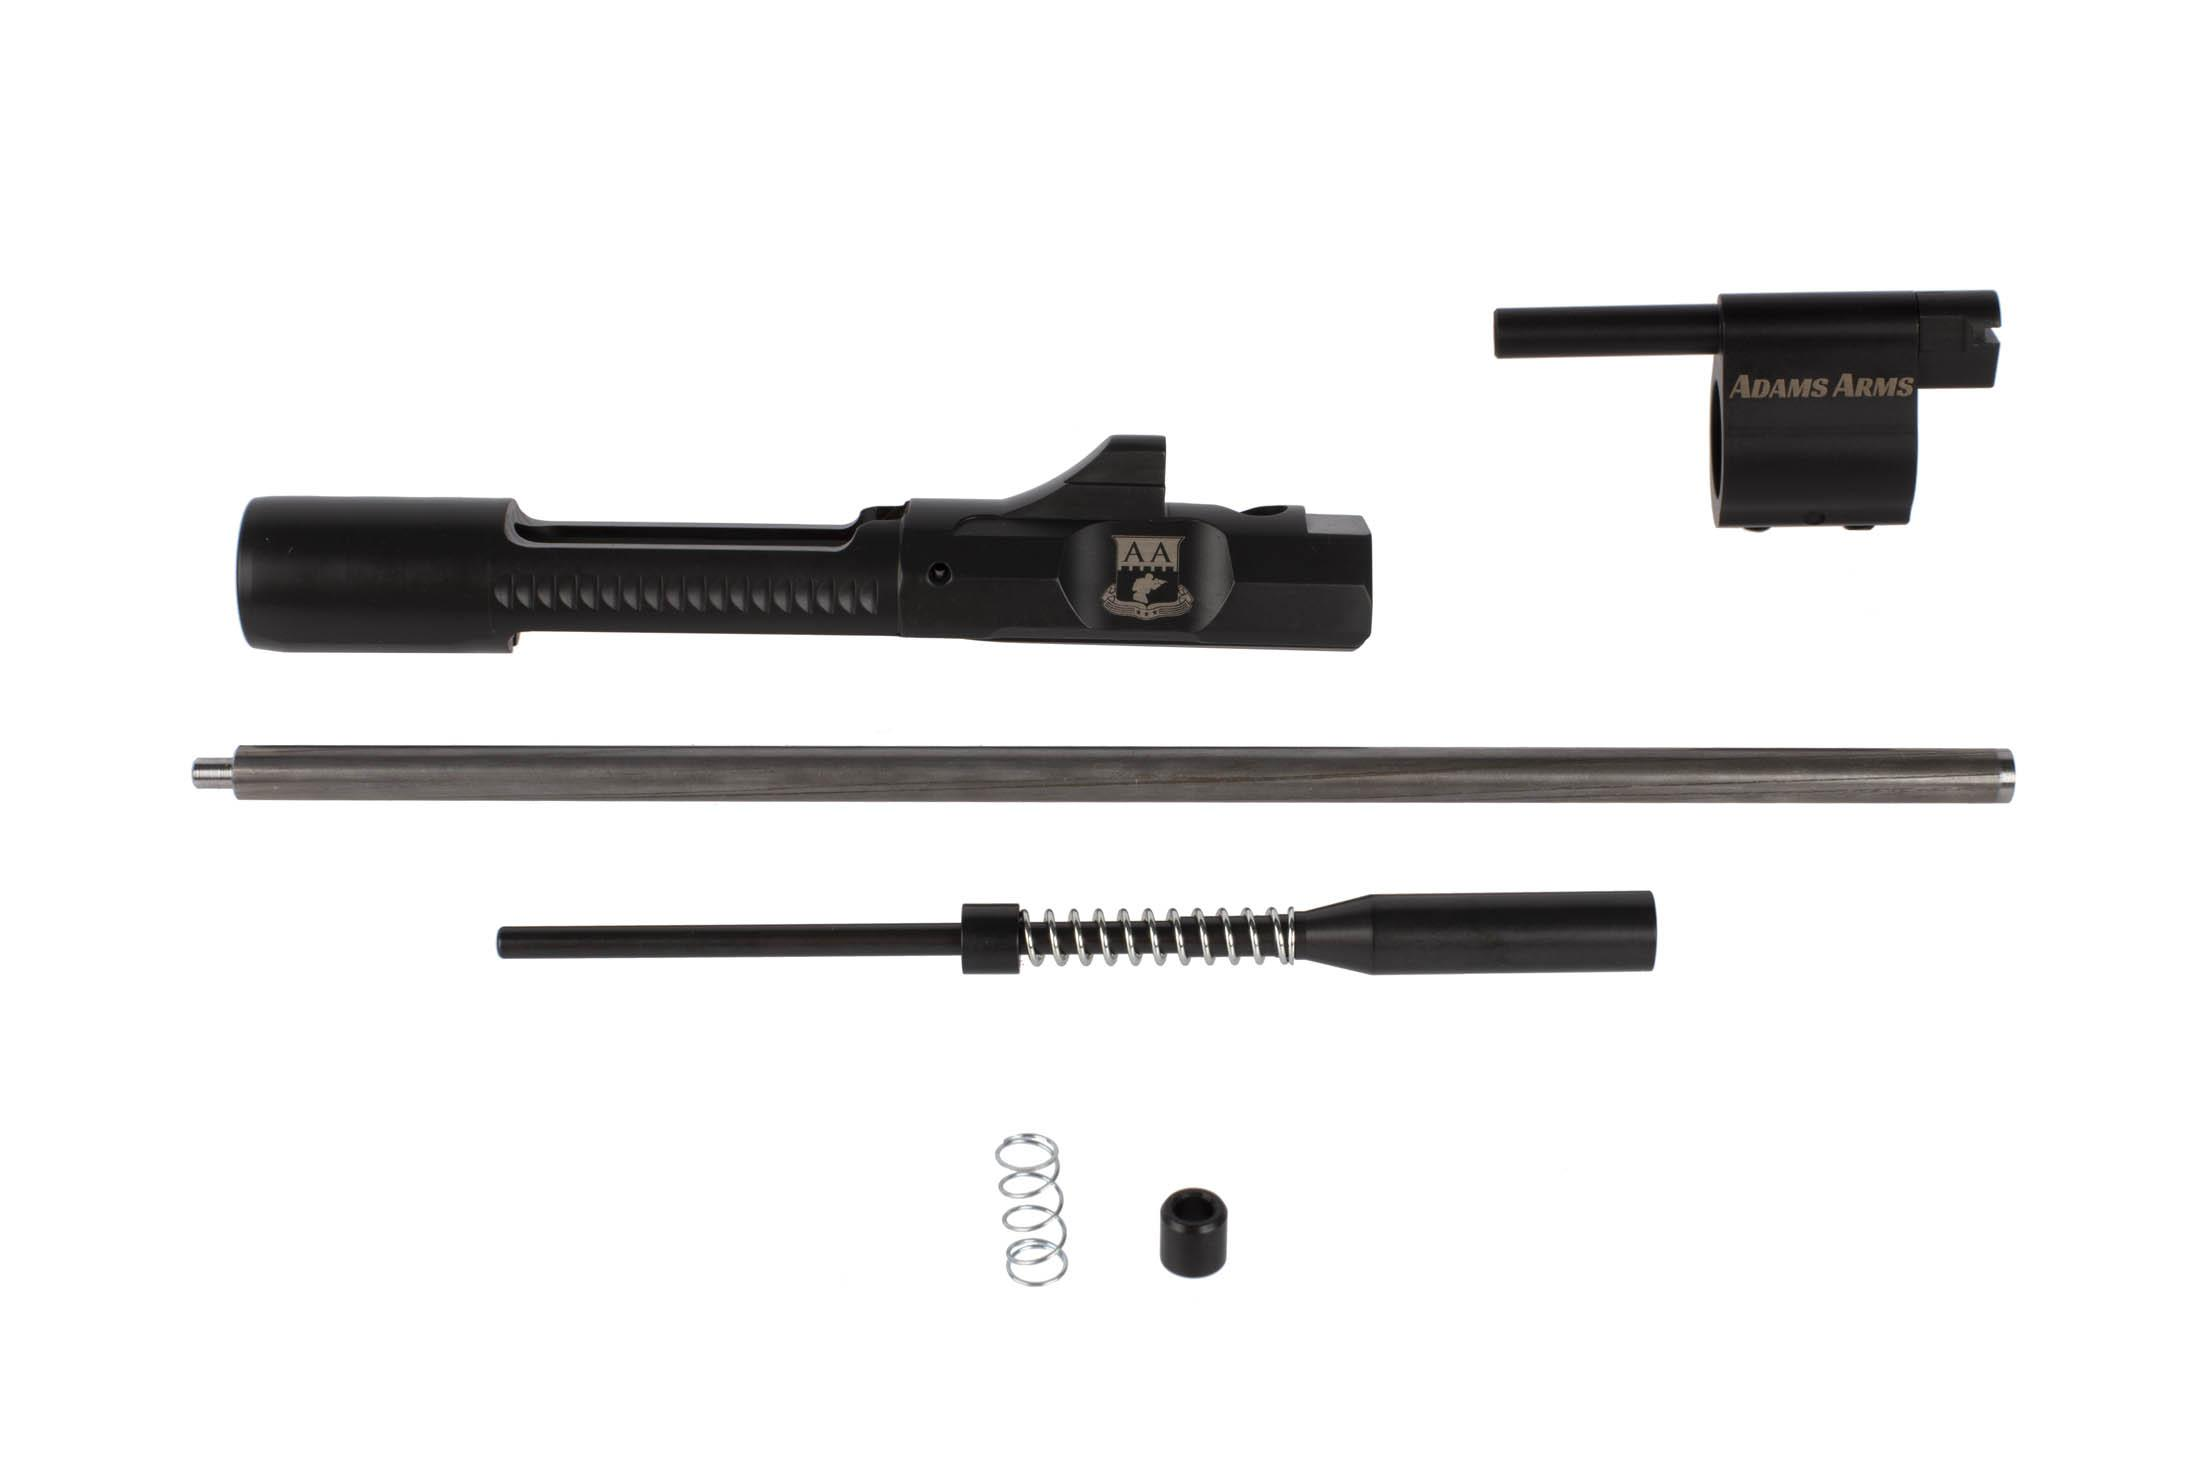 Adams Arms P-Series adjustable AR-15 piston conversion kit includes a pistol length piston and M16 bolt carrier group.